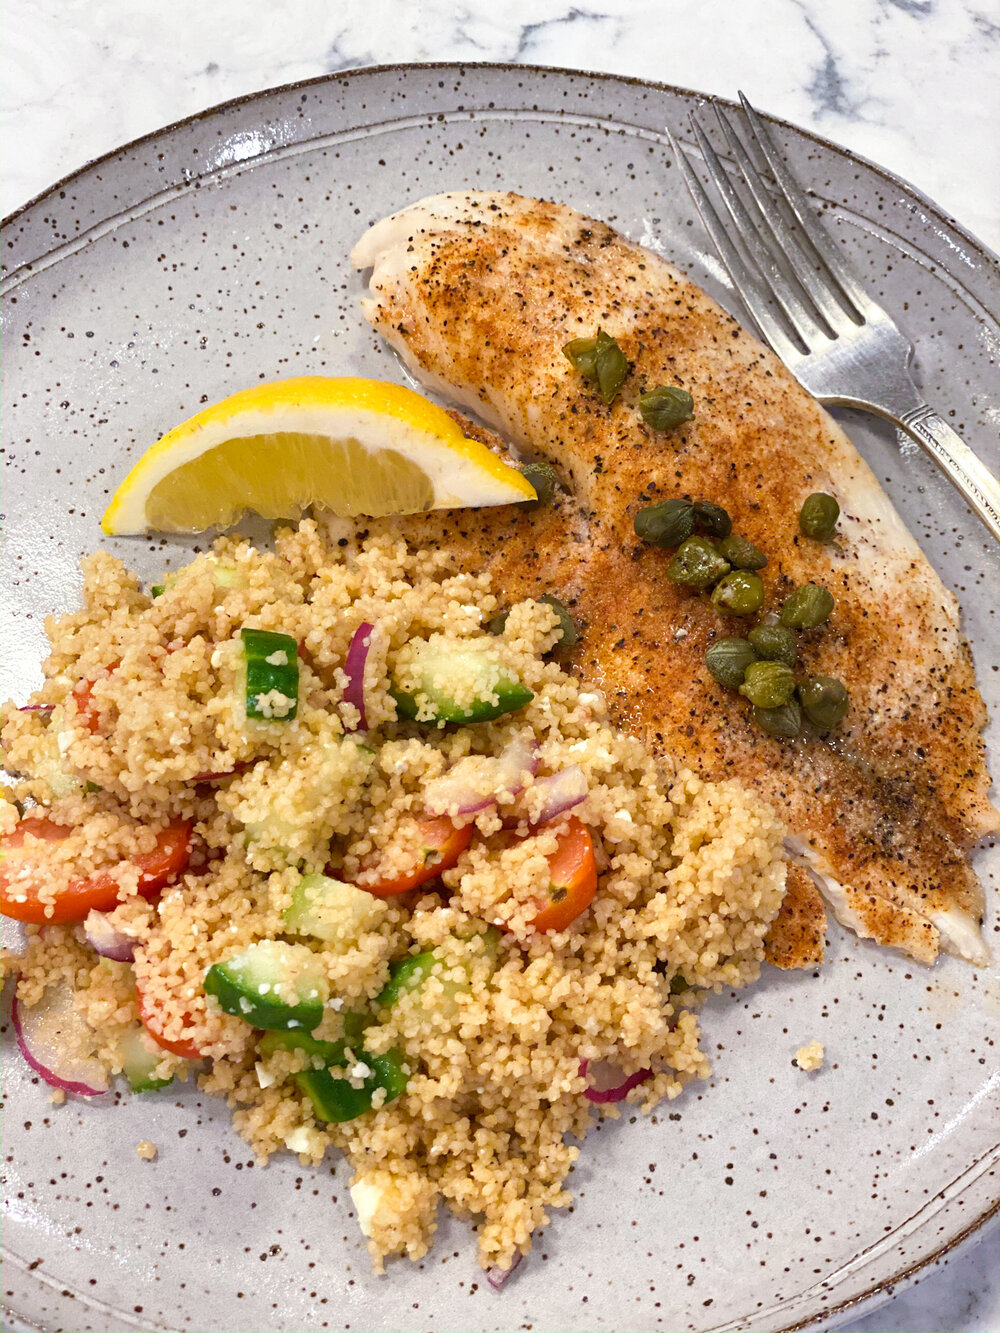 Couscous+Salad+with+cucumber+tomatoes+and+red+onion